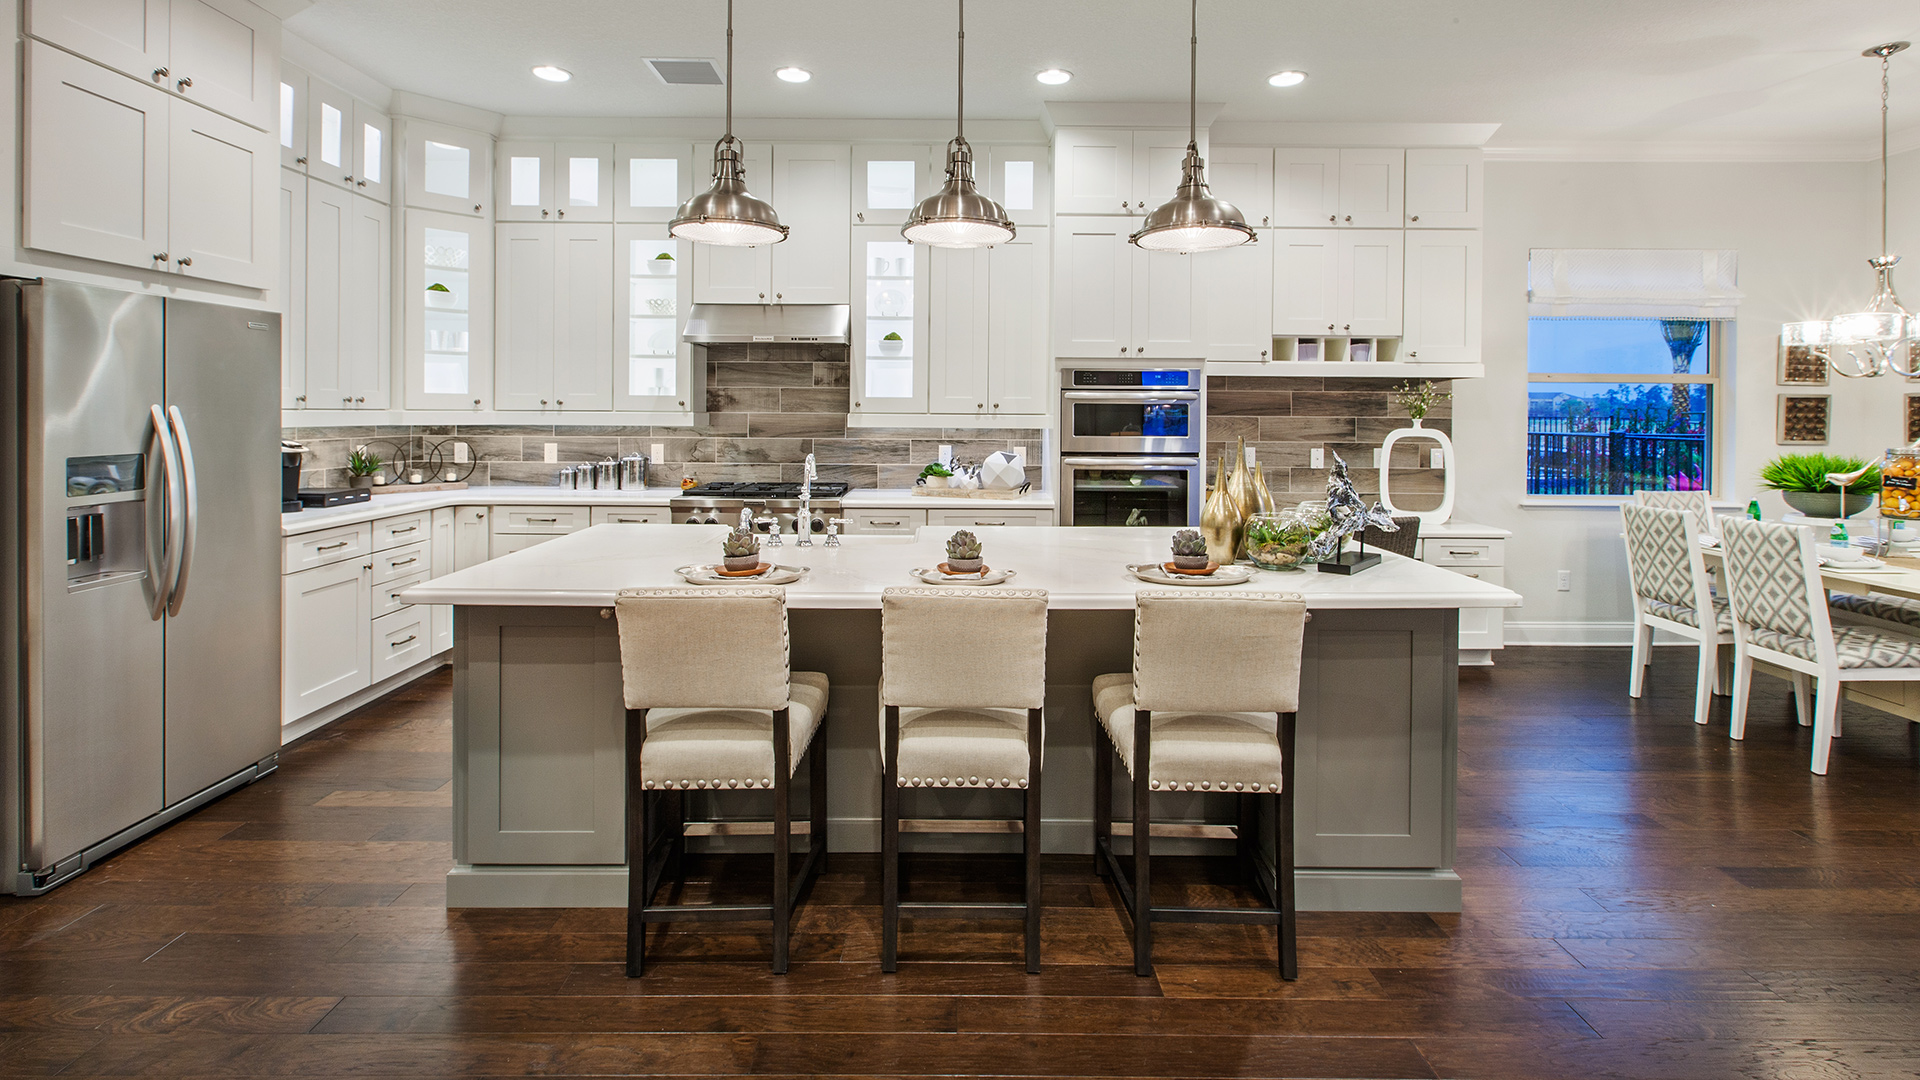 Royal cypress preserve quick delivery home massiano for Kitchen 17 delivery